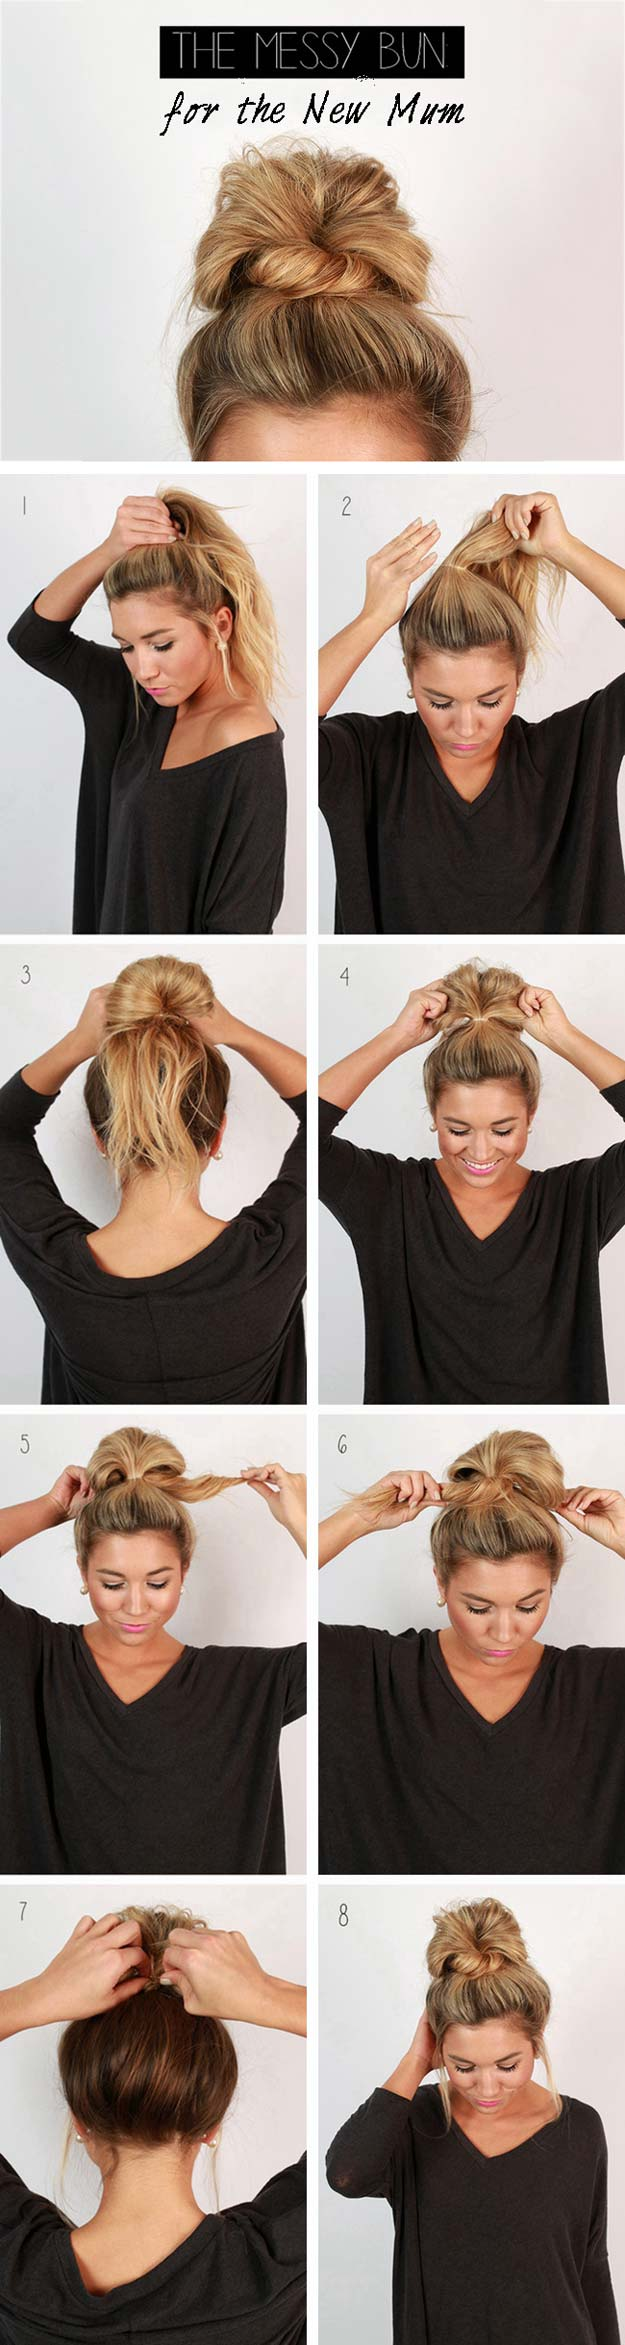 41 diy cool easy hairstyles that real people can actually do at home cool and easy diy hairstyles messy bun quick and easy ideas for back to solutioingenieria Images